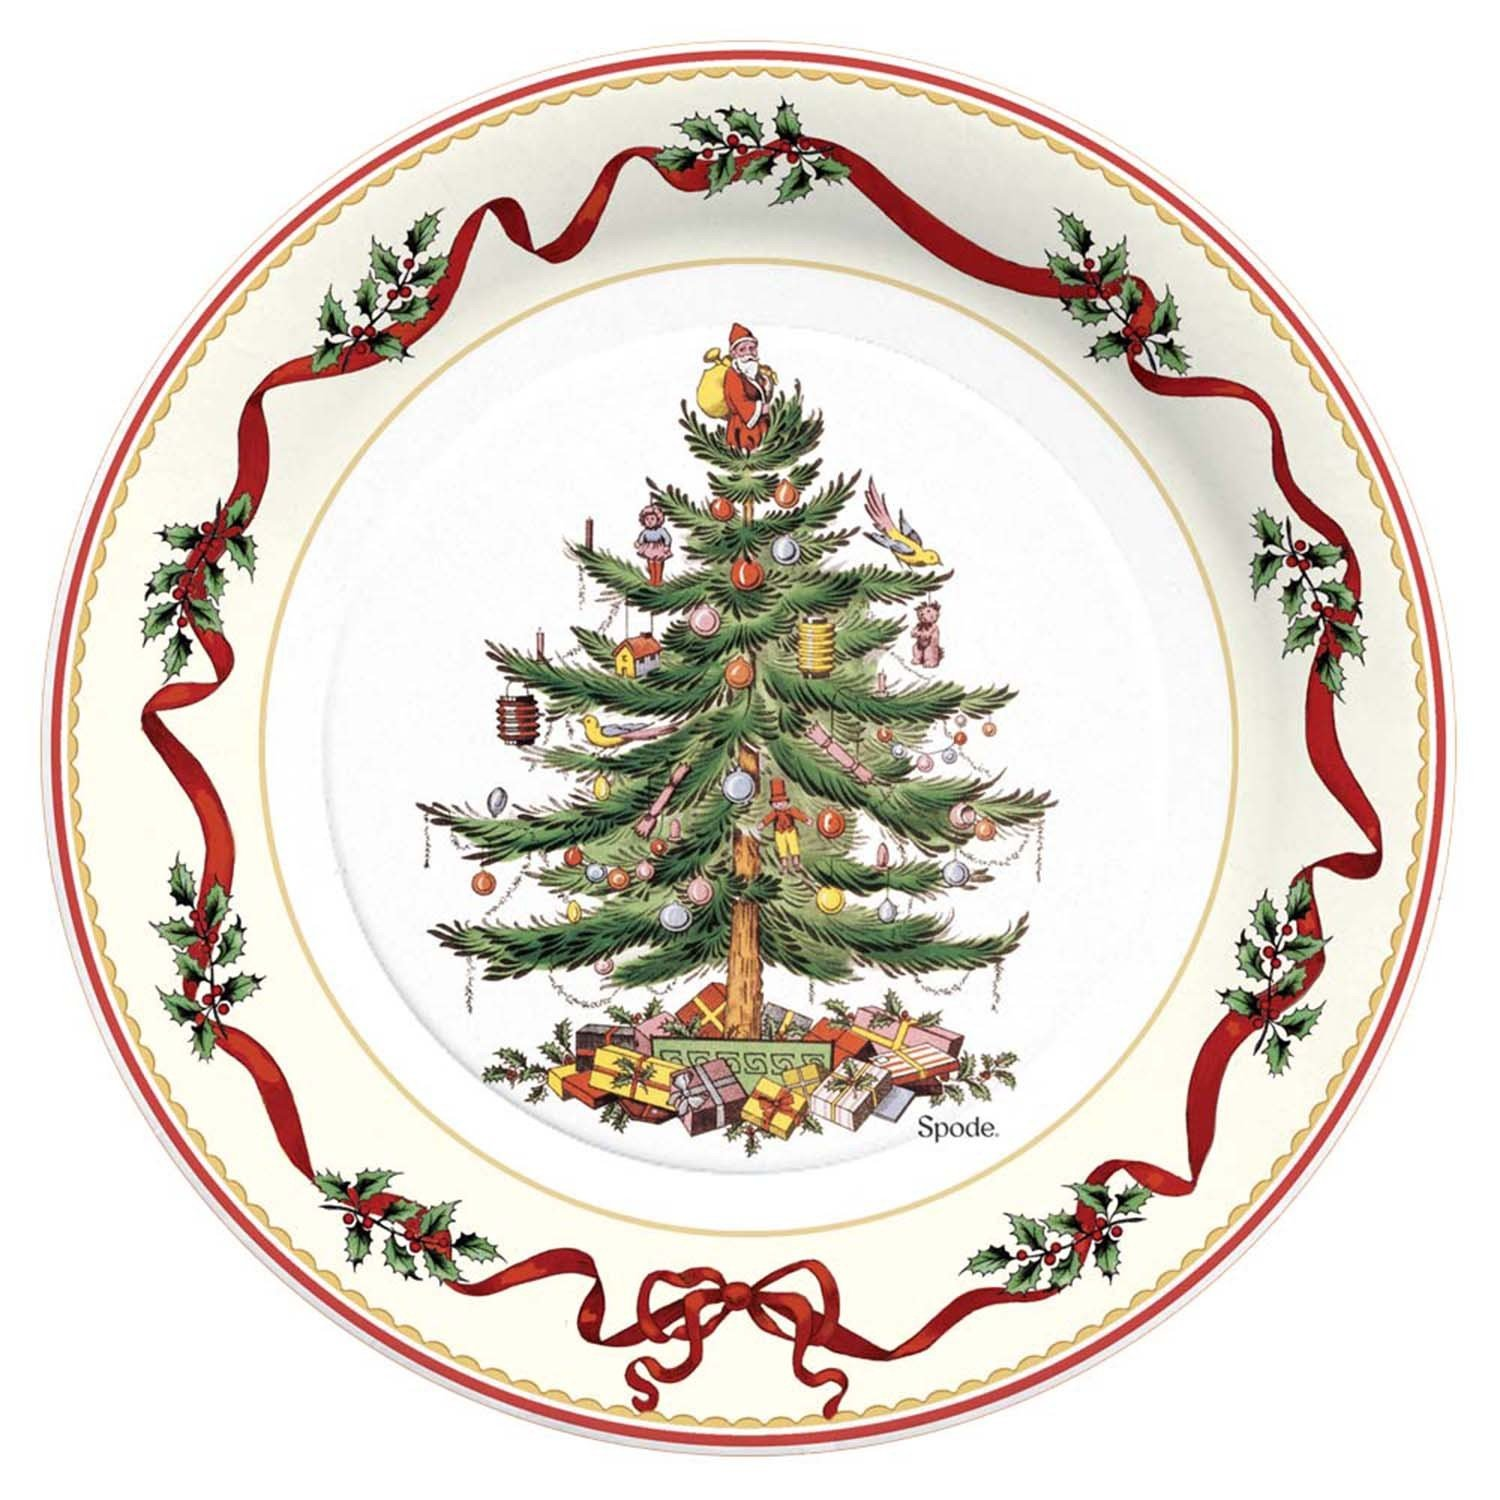 Amazon.com C.R. Gibson 8 Count Decorative Paper Dinner Plates Easy Clean Up Measures 10.5\  - Christmas Holly \u0026 Ribbon Kitchen \u0026 Dining  sc 1 st  Amazon.com & Amazon.com: C.R. Gibson 8 Count Decorative Paper Dinner Plates Easy ...